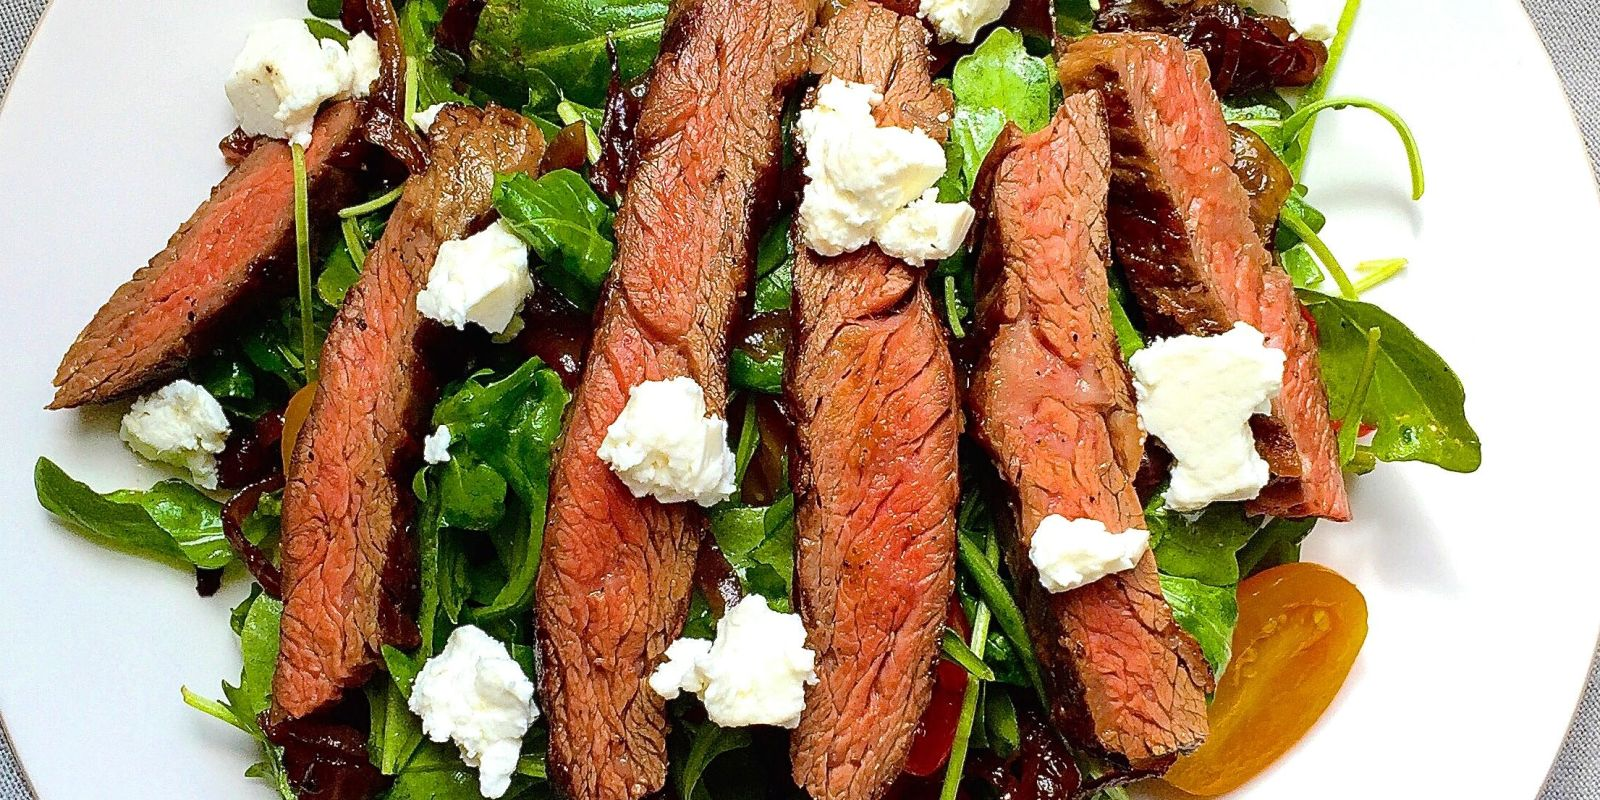 Grilled Skirt Steak Salad with Arugula, Balsamic-Glazed Onions, Tomatoes, and Feta